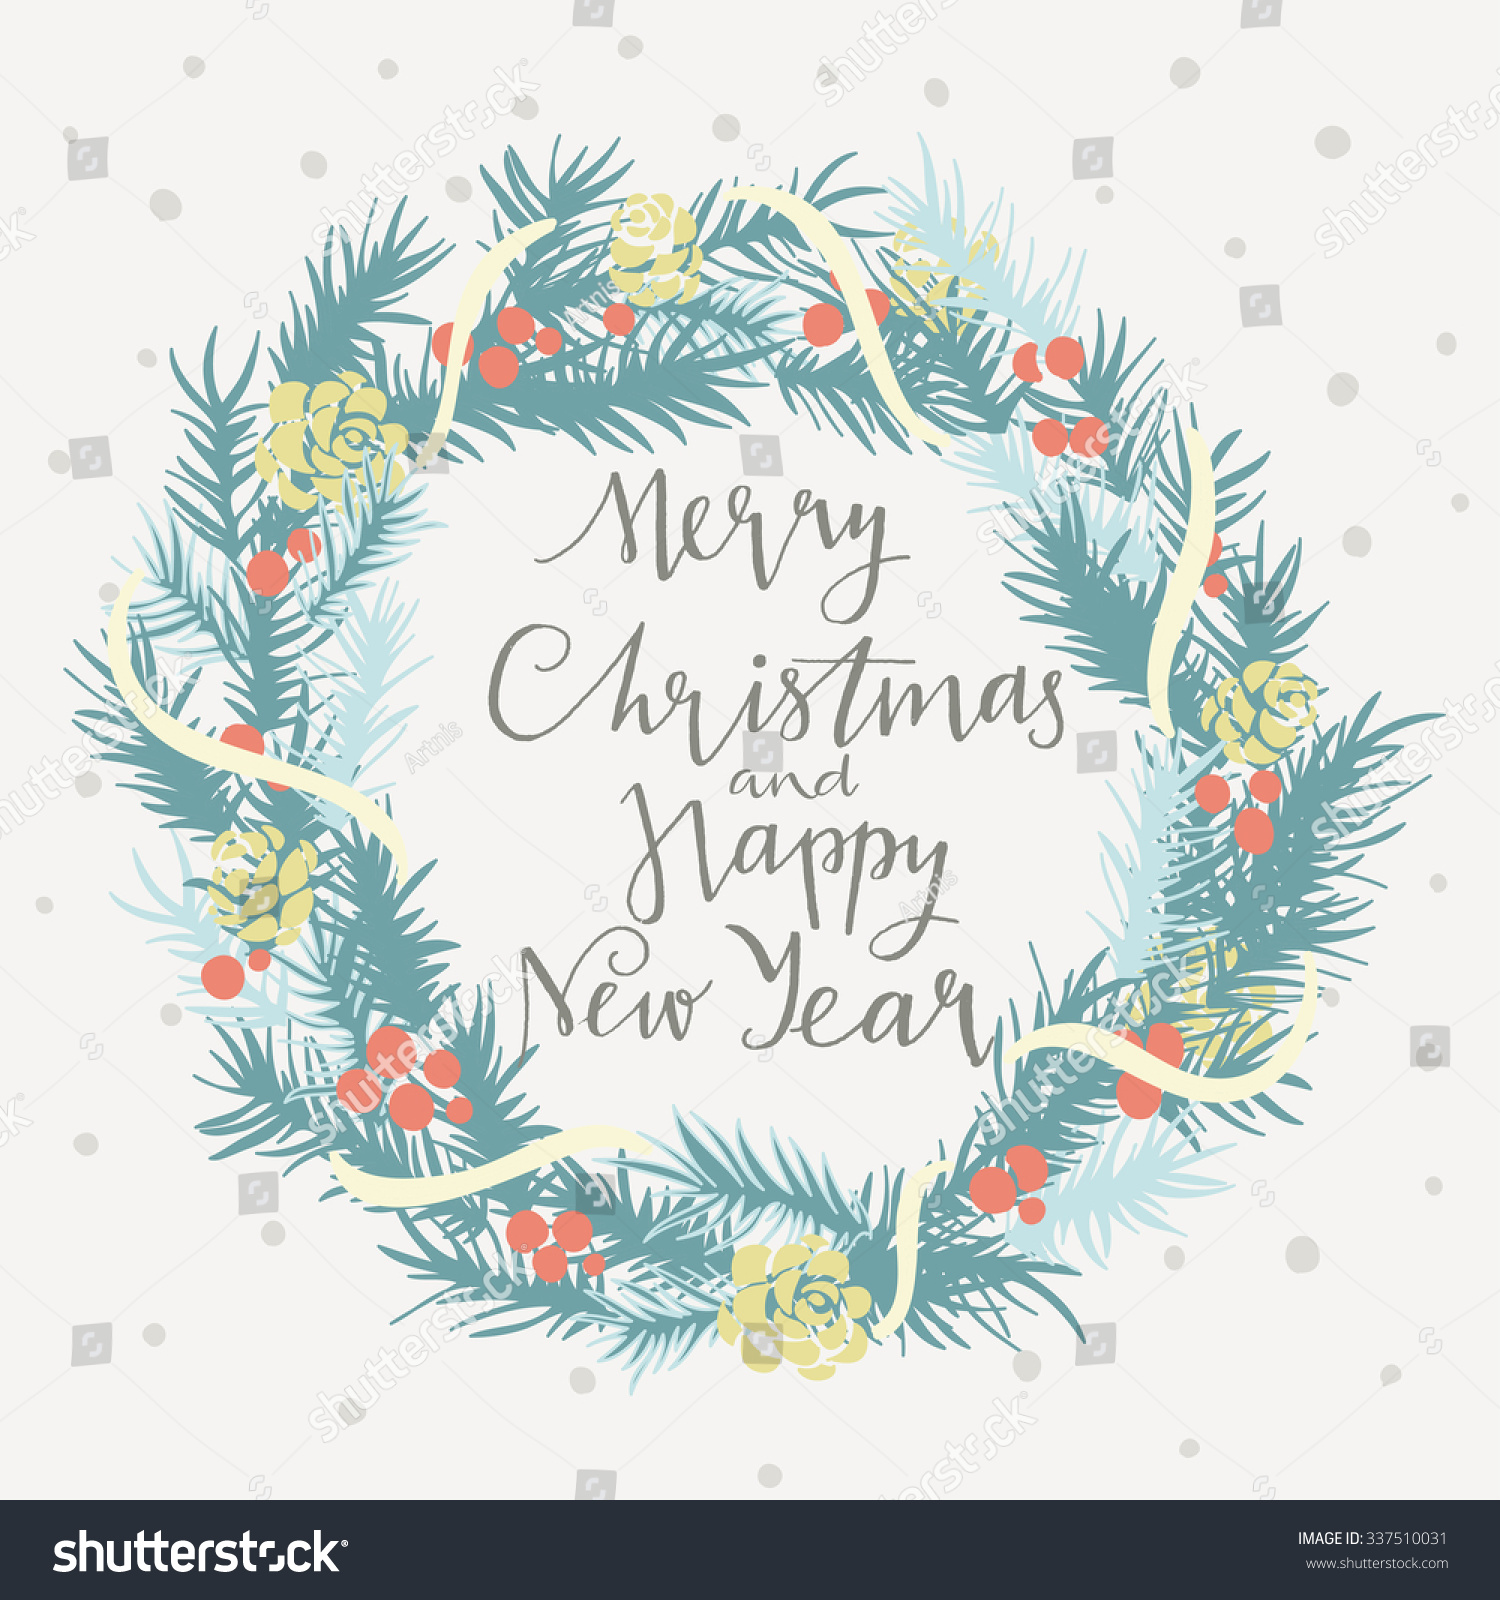 merry christmas happy new year card stock vector royalty free 337510031 https www shutterstock com image vector merry christmas happy new year card 337510031